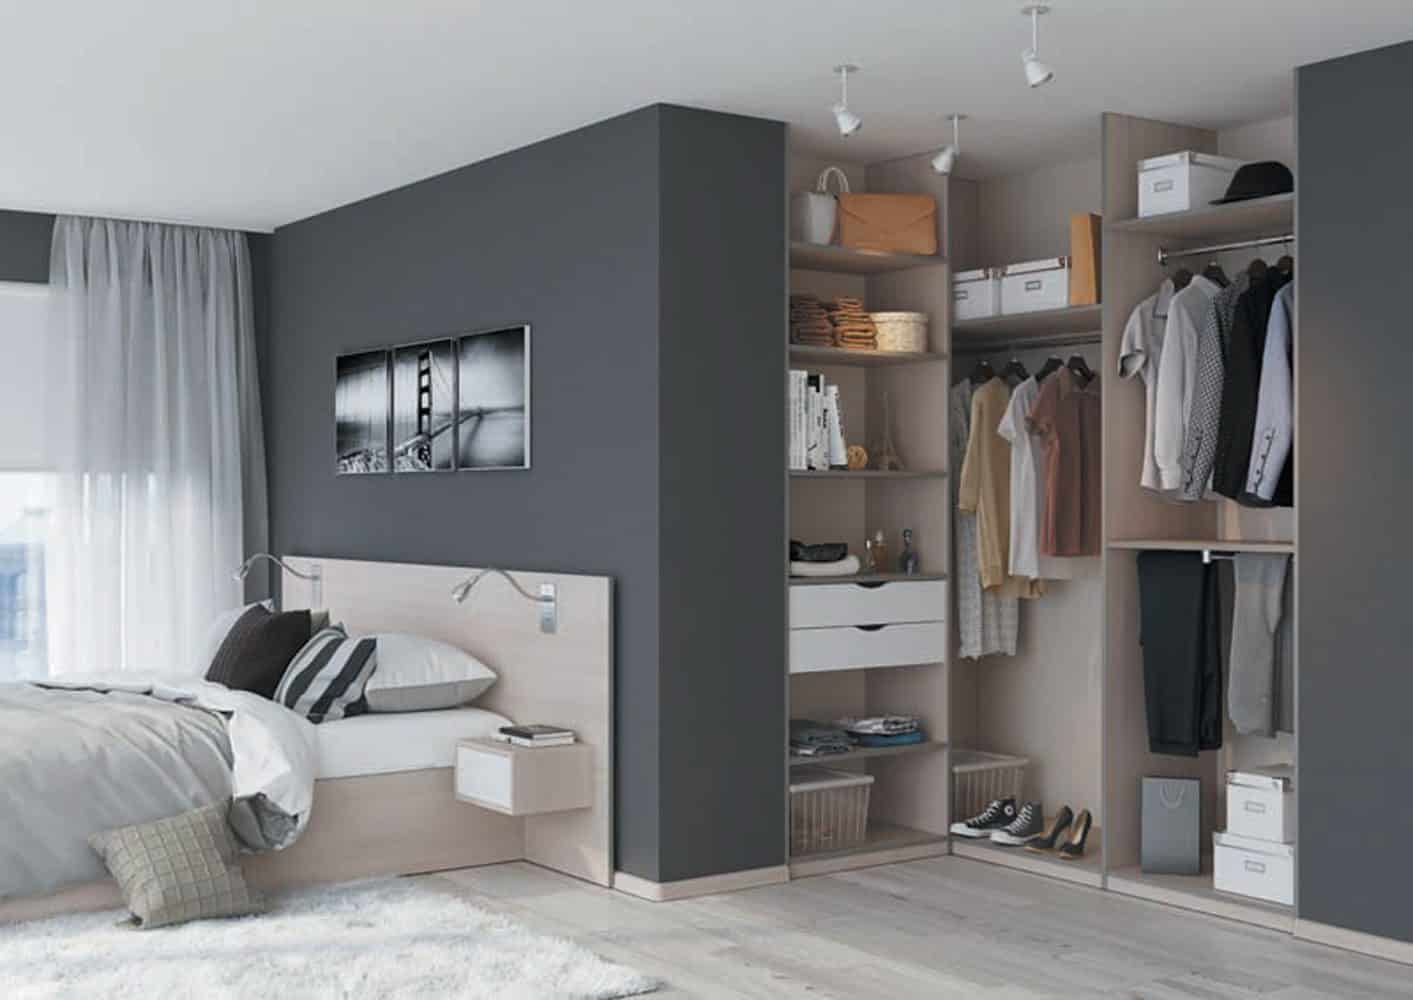 apf menuiserie sa nous r alisons votre dressing sur mesure. Black Bedroom Furniture Sets. Home Design Ideas